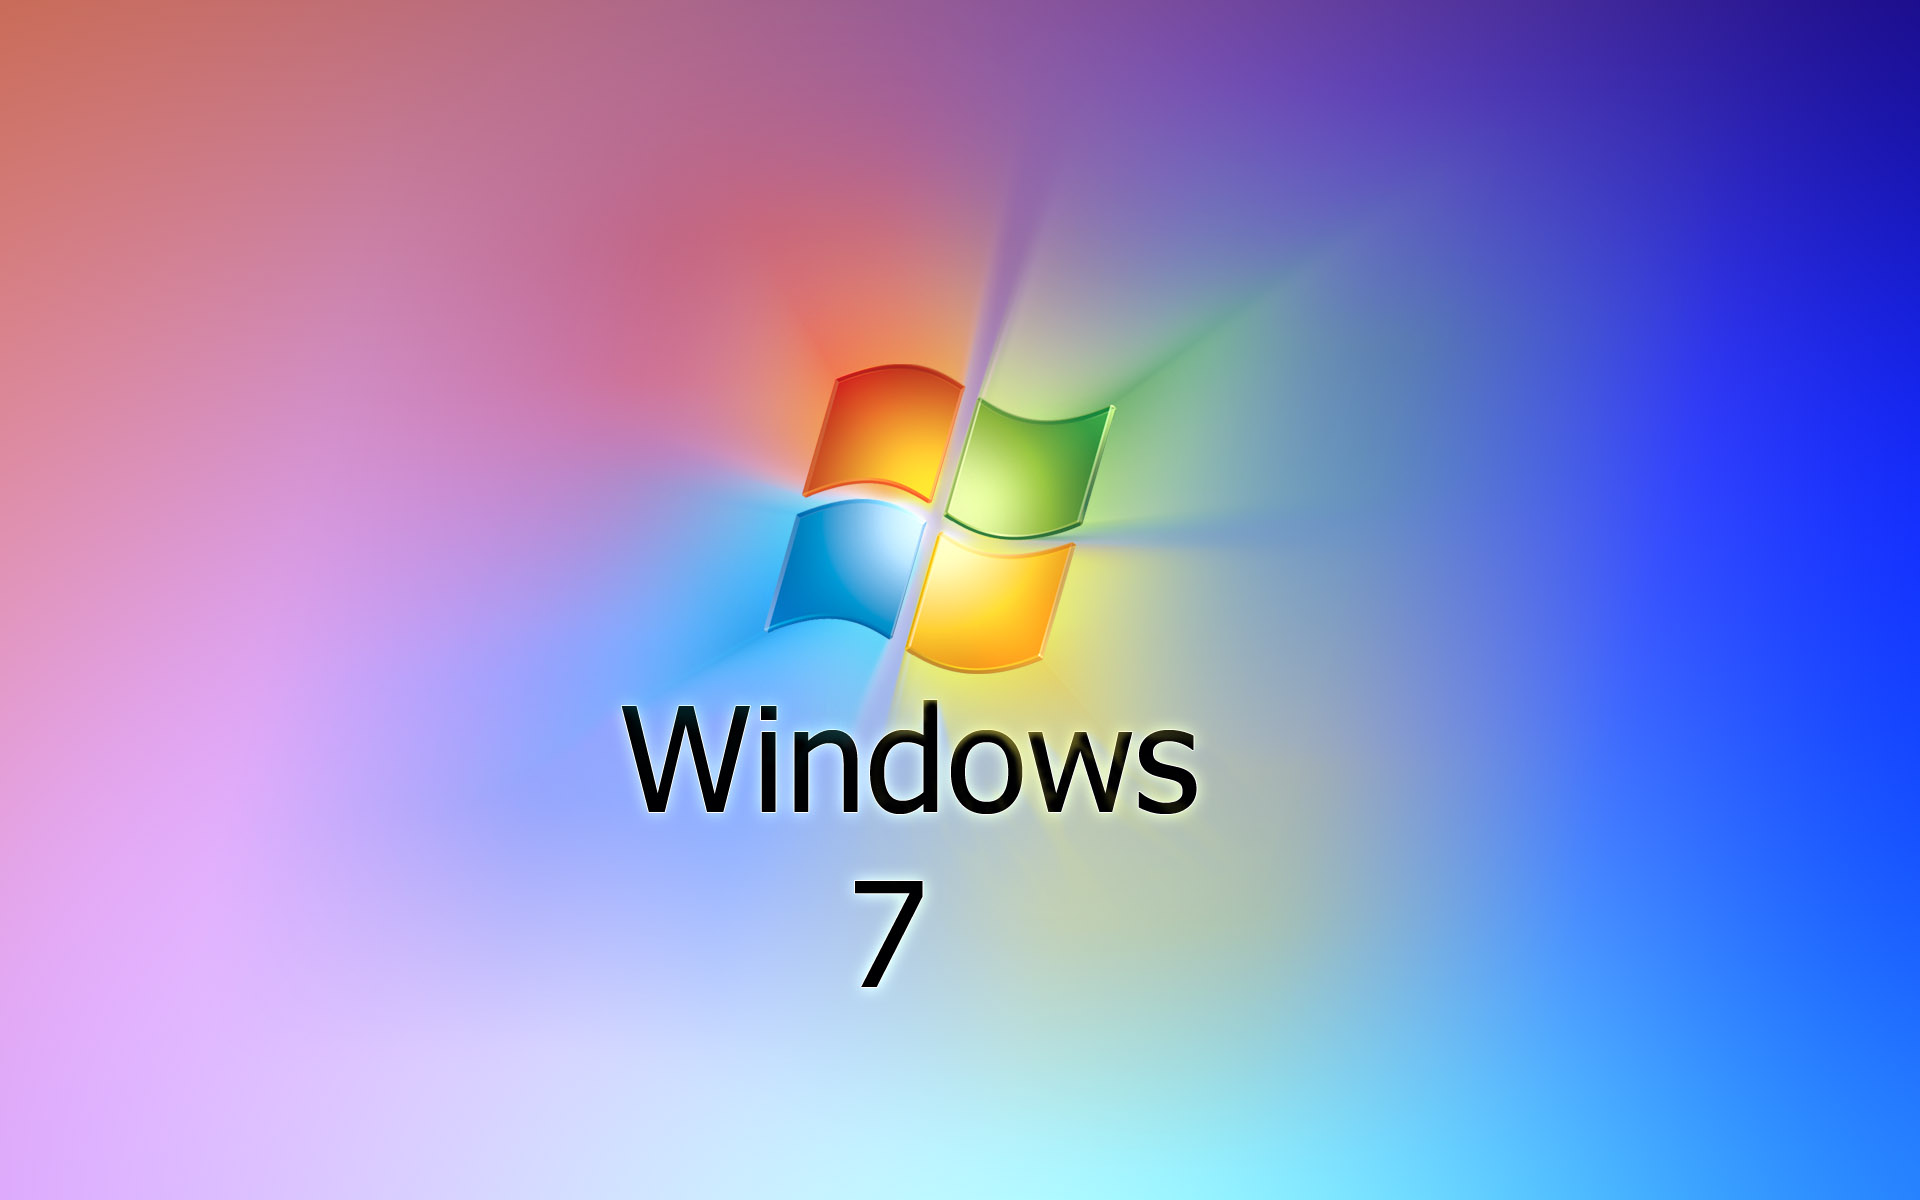 Hd Windows 7 Clipart 1080p.